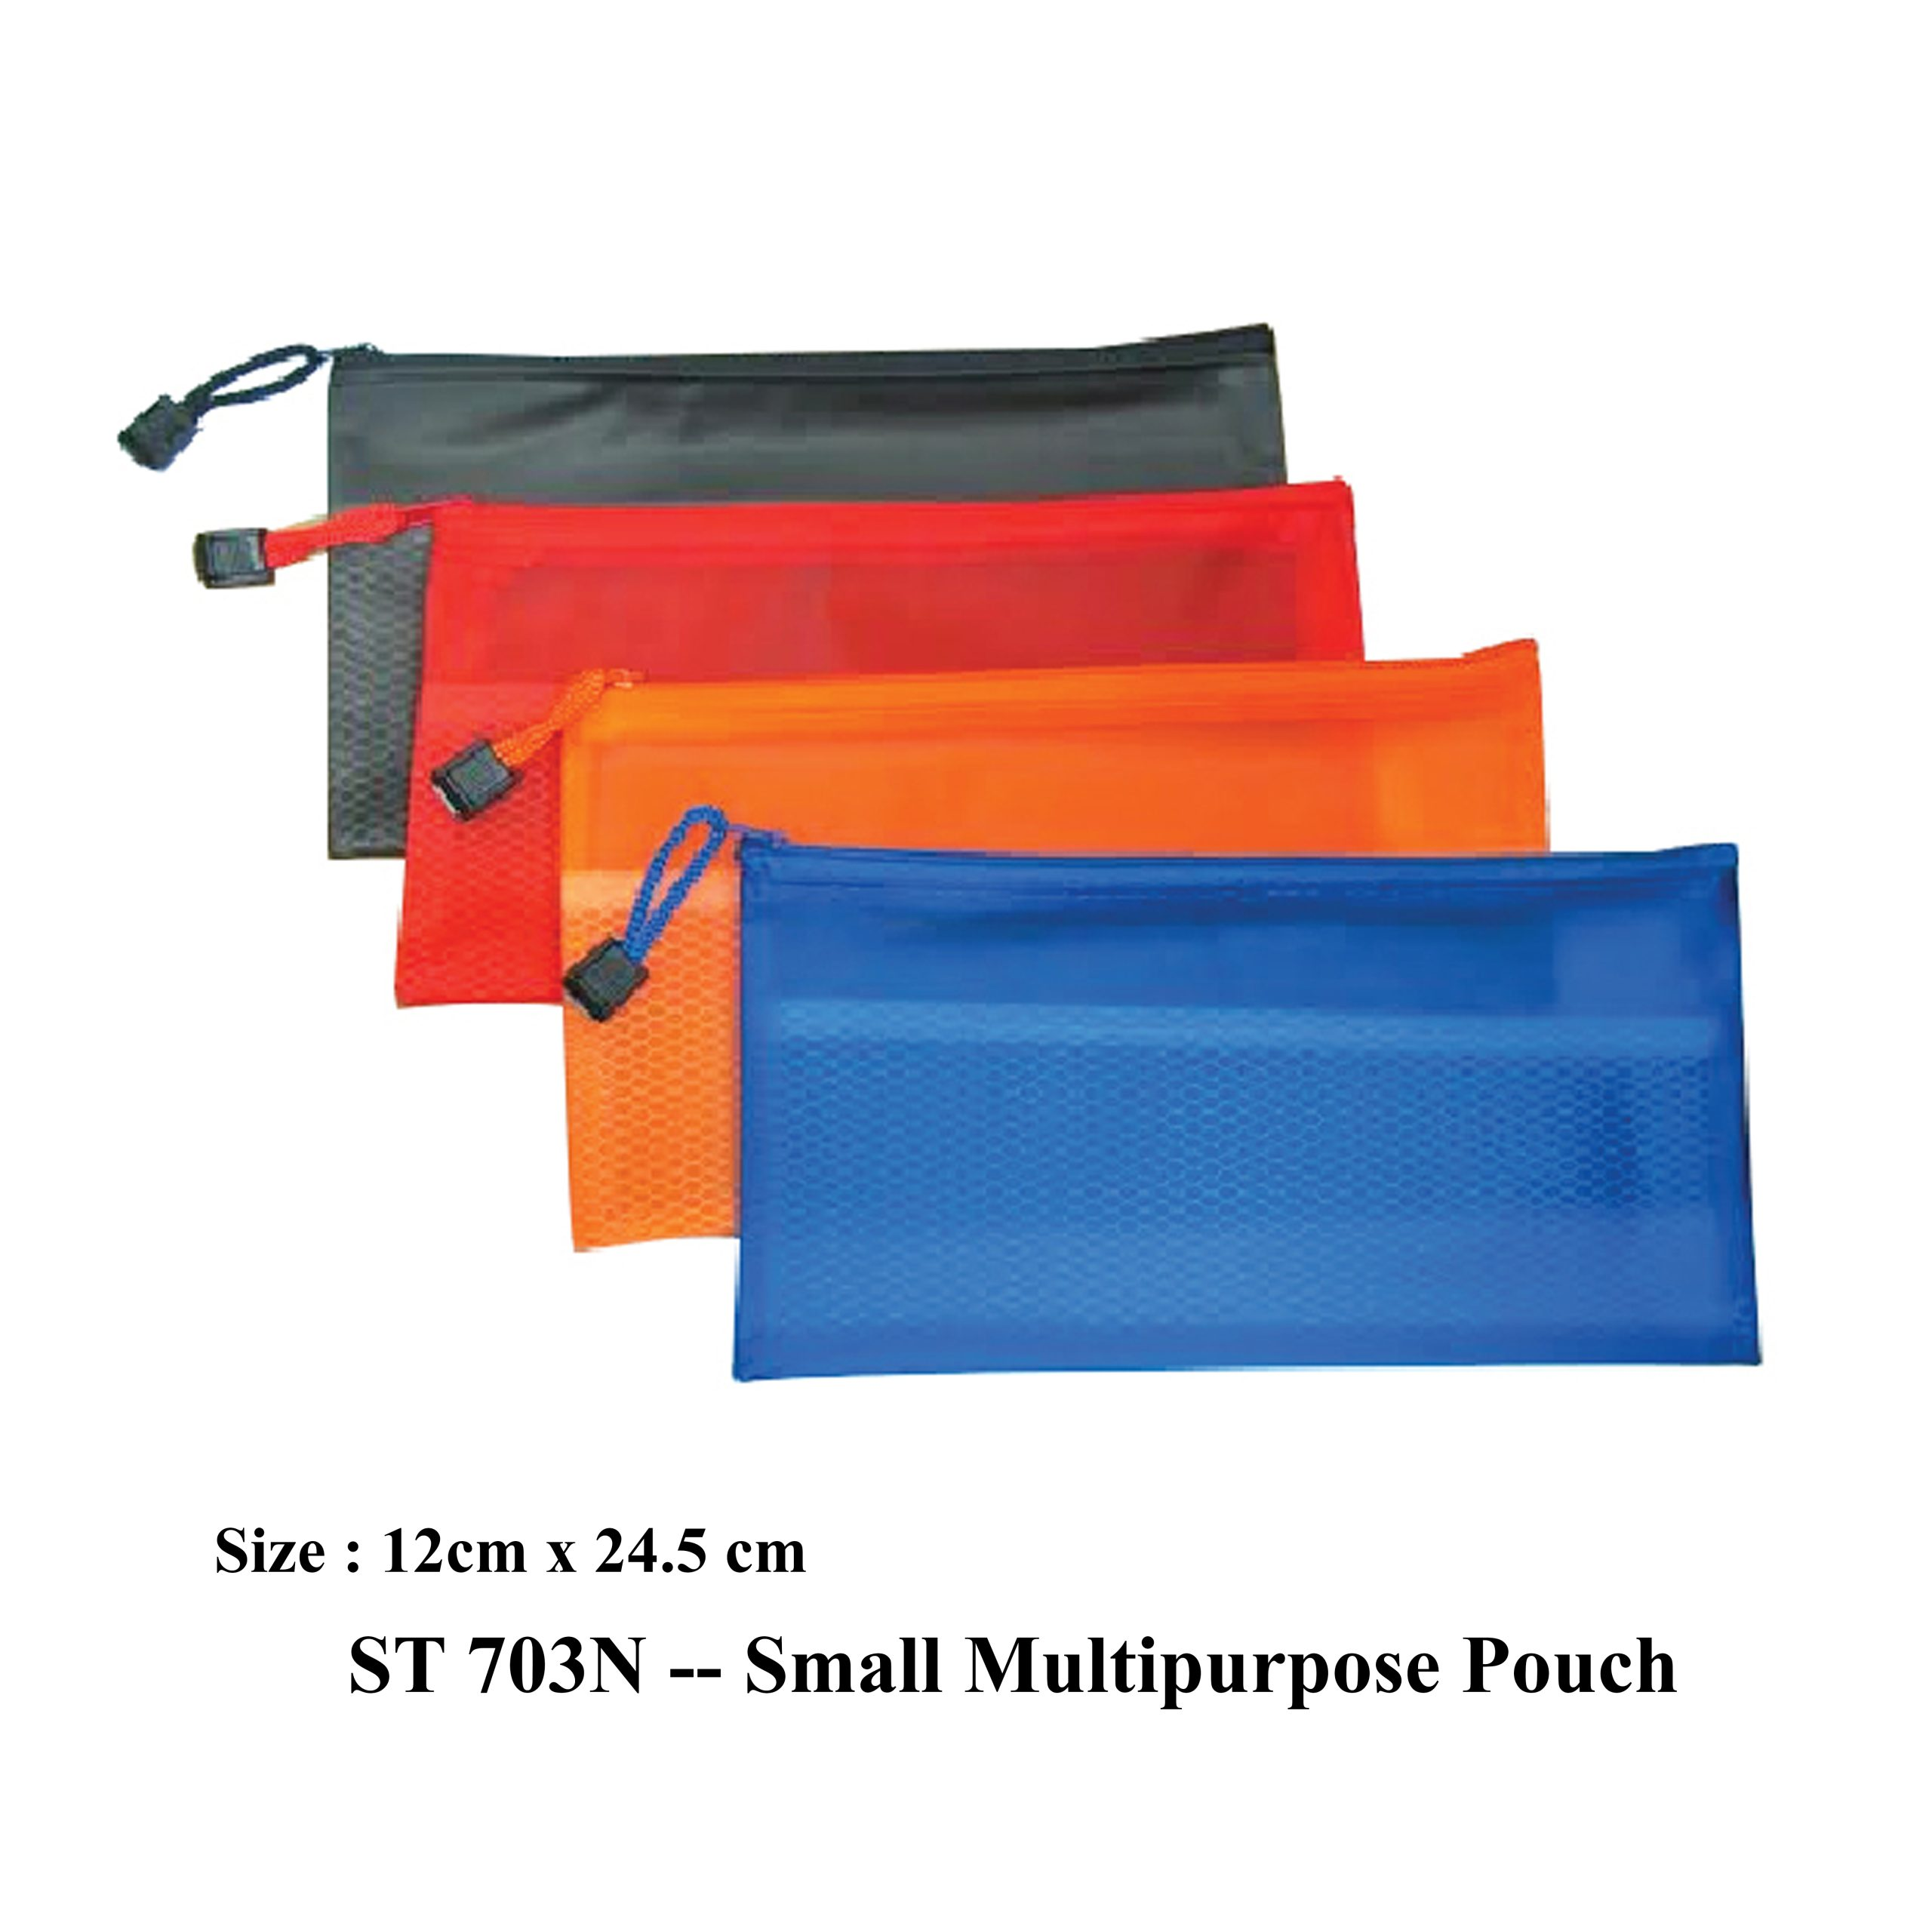 ST 703N — Small Multipurpose Pouch